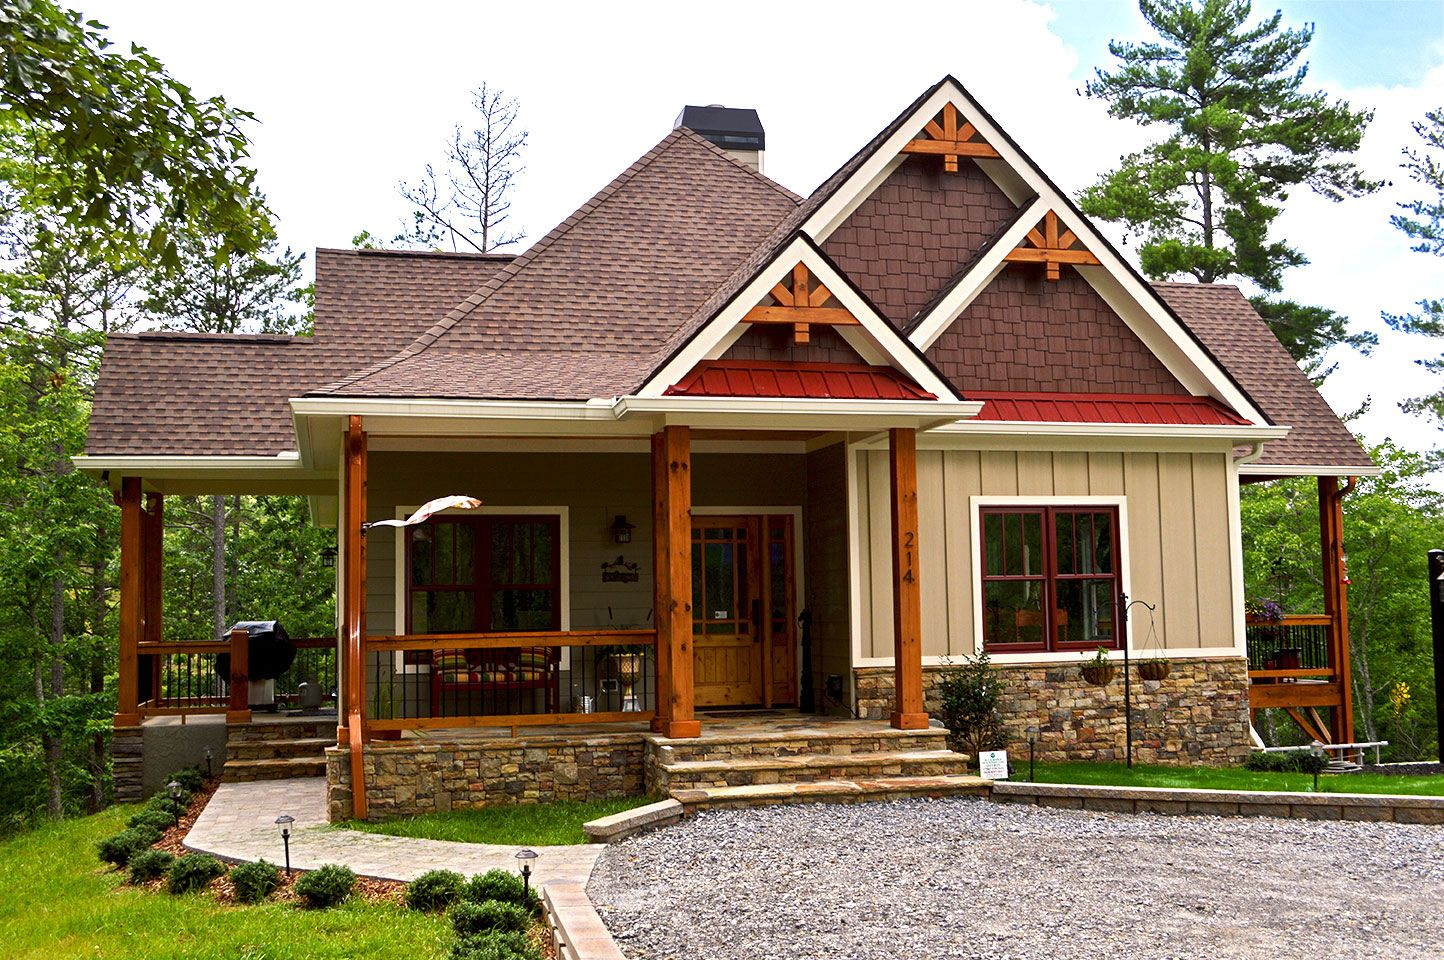 Exterior House Pictures Lake Mountain And Cabin Photos Rustic House Plans Porch House Plans Small Lake Houses